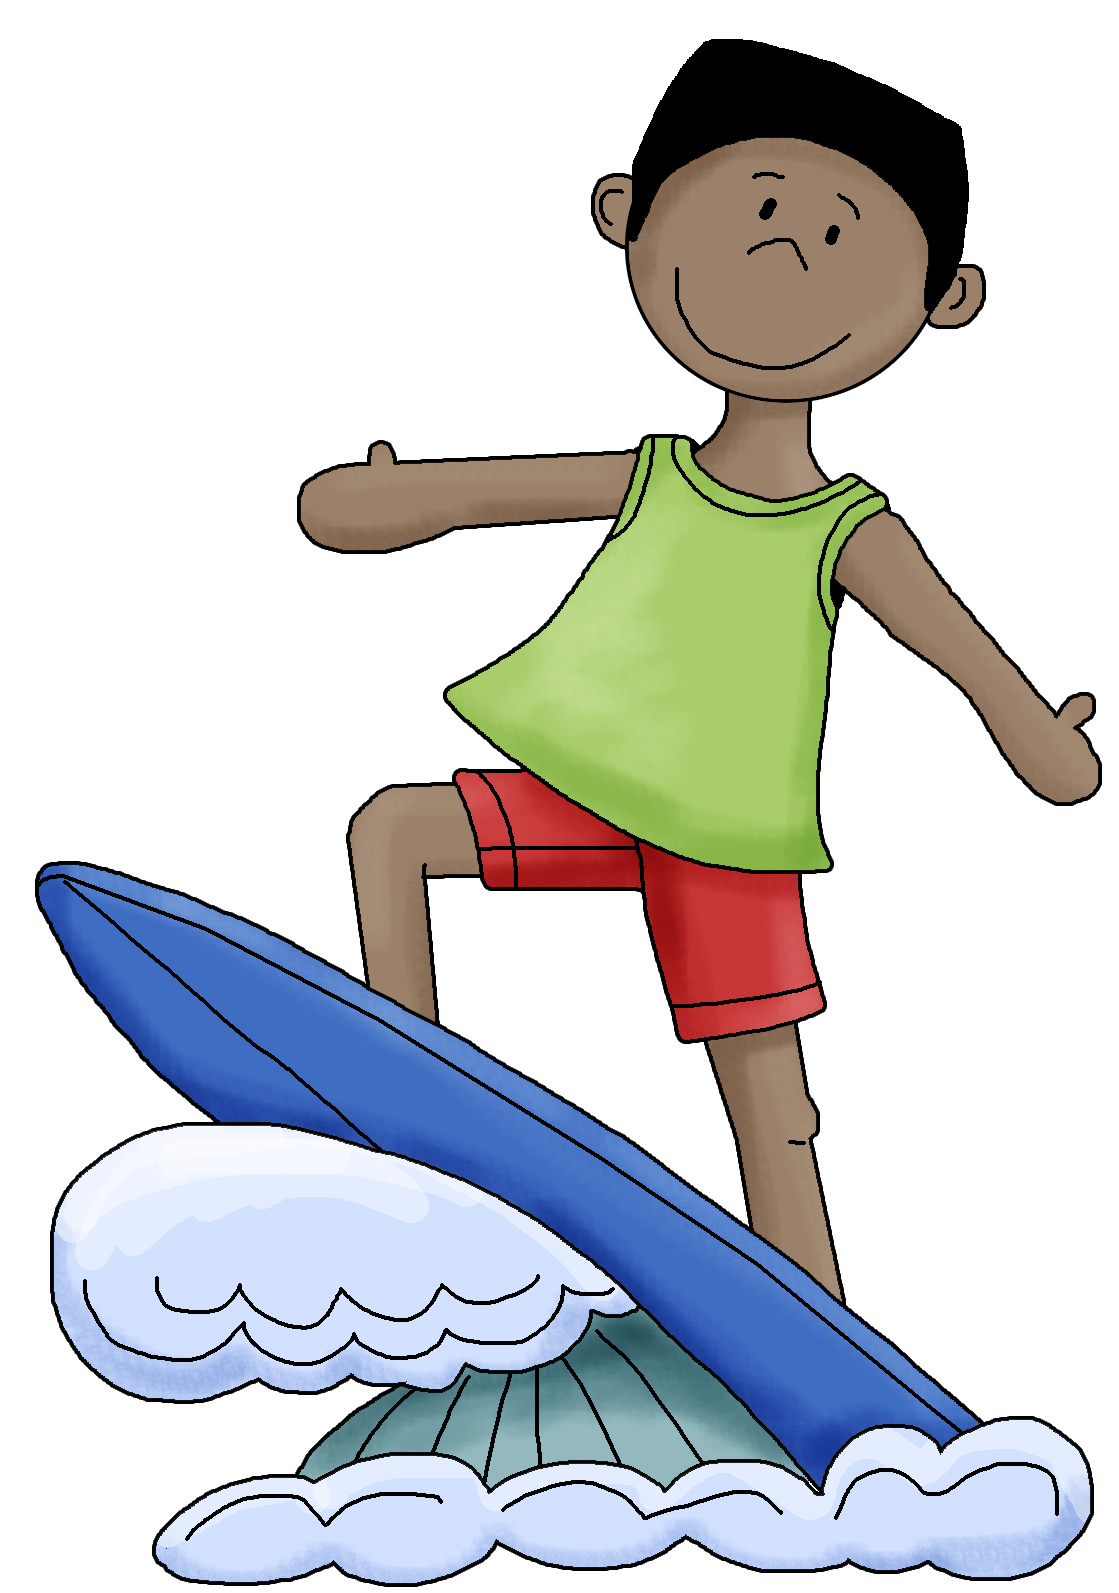 Kids on surfboard clipart banner royalty free Surfer Clipart - Clipart Kid banner royalty free